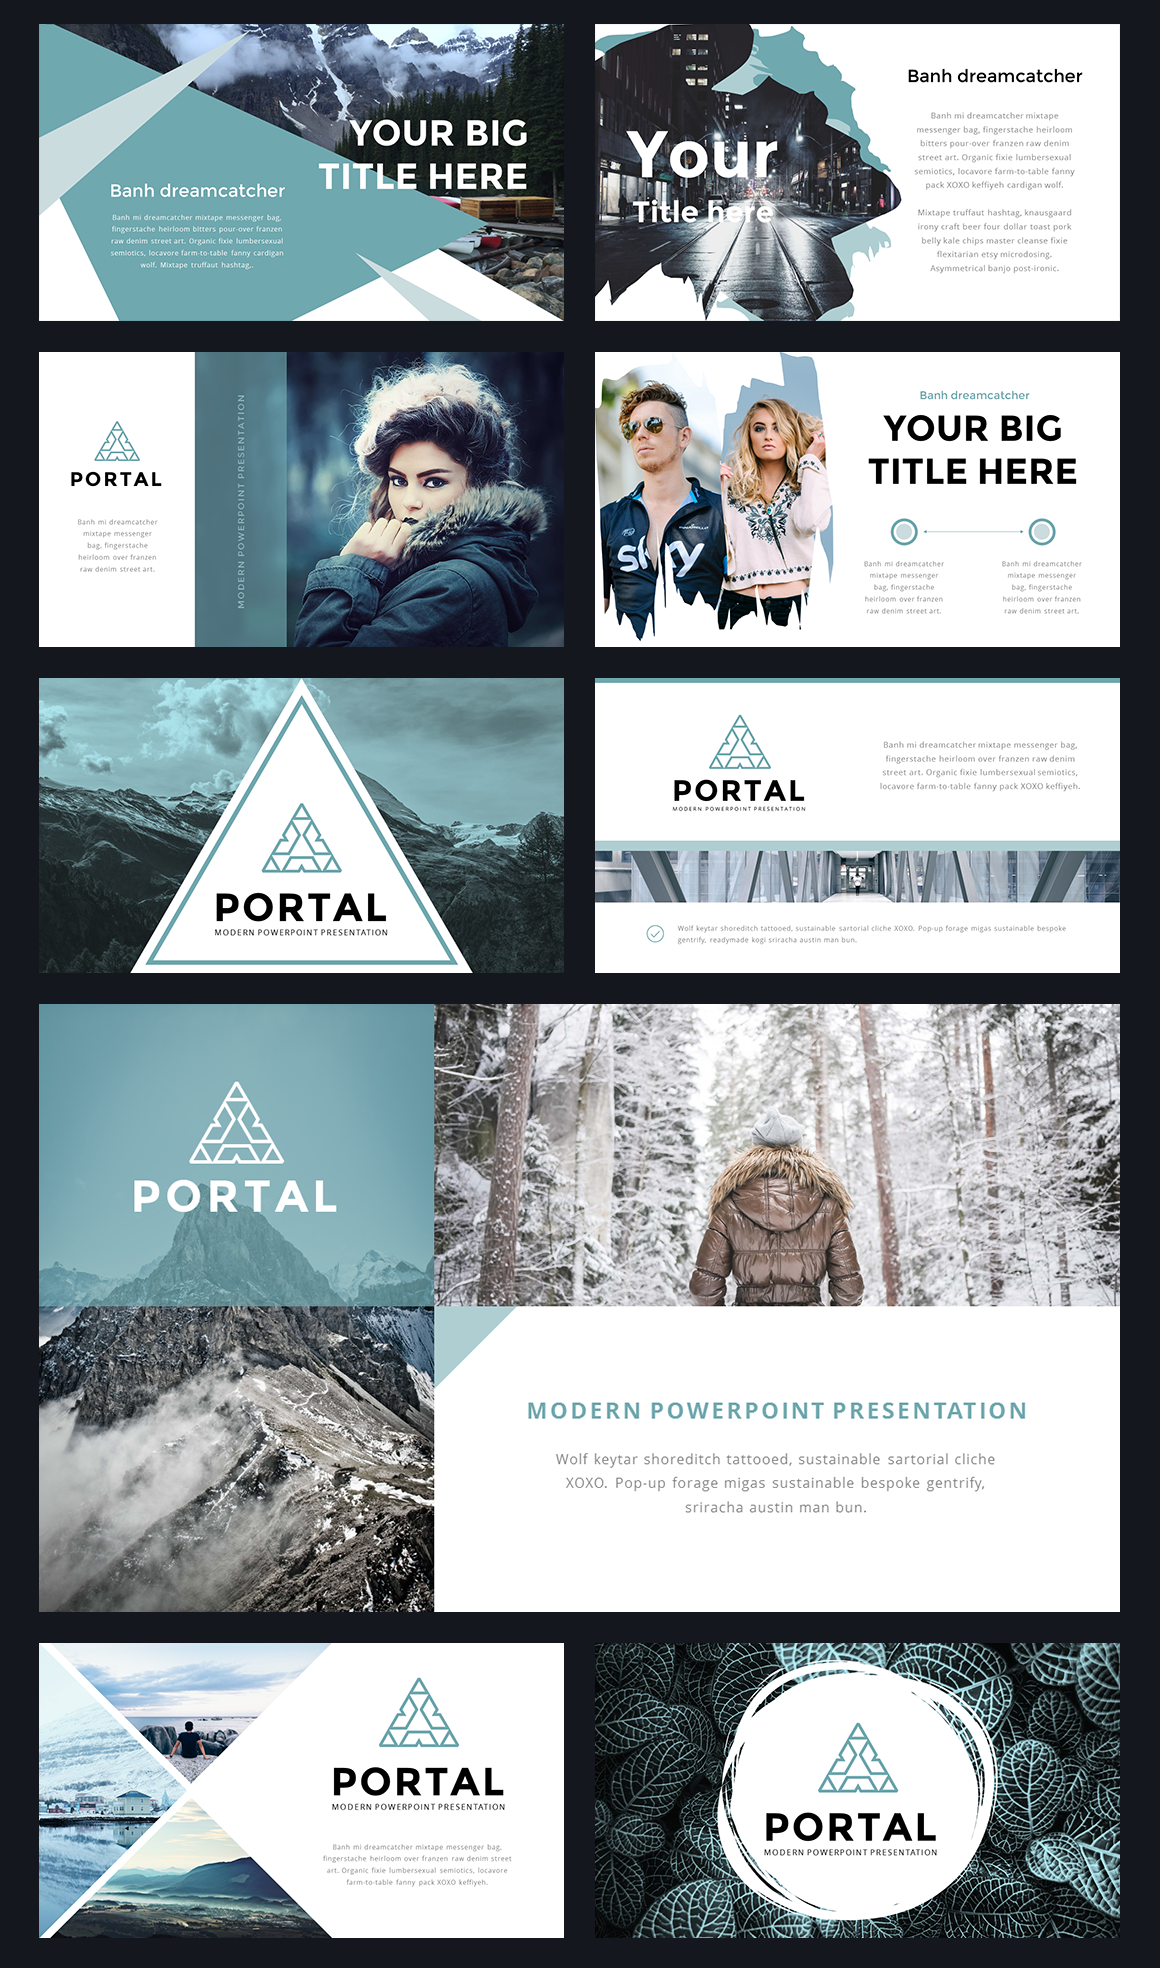 Portal modern powerpoint template pinterest portal template and portal modern powerpoint template by thrivisualy on creativemarket toneelgroepblik Images